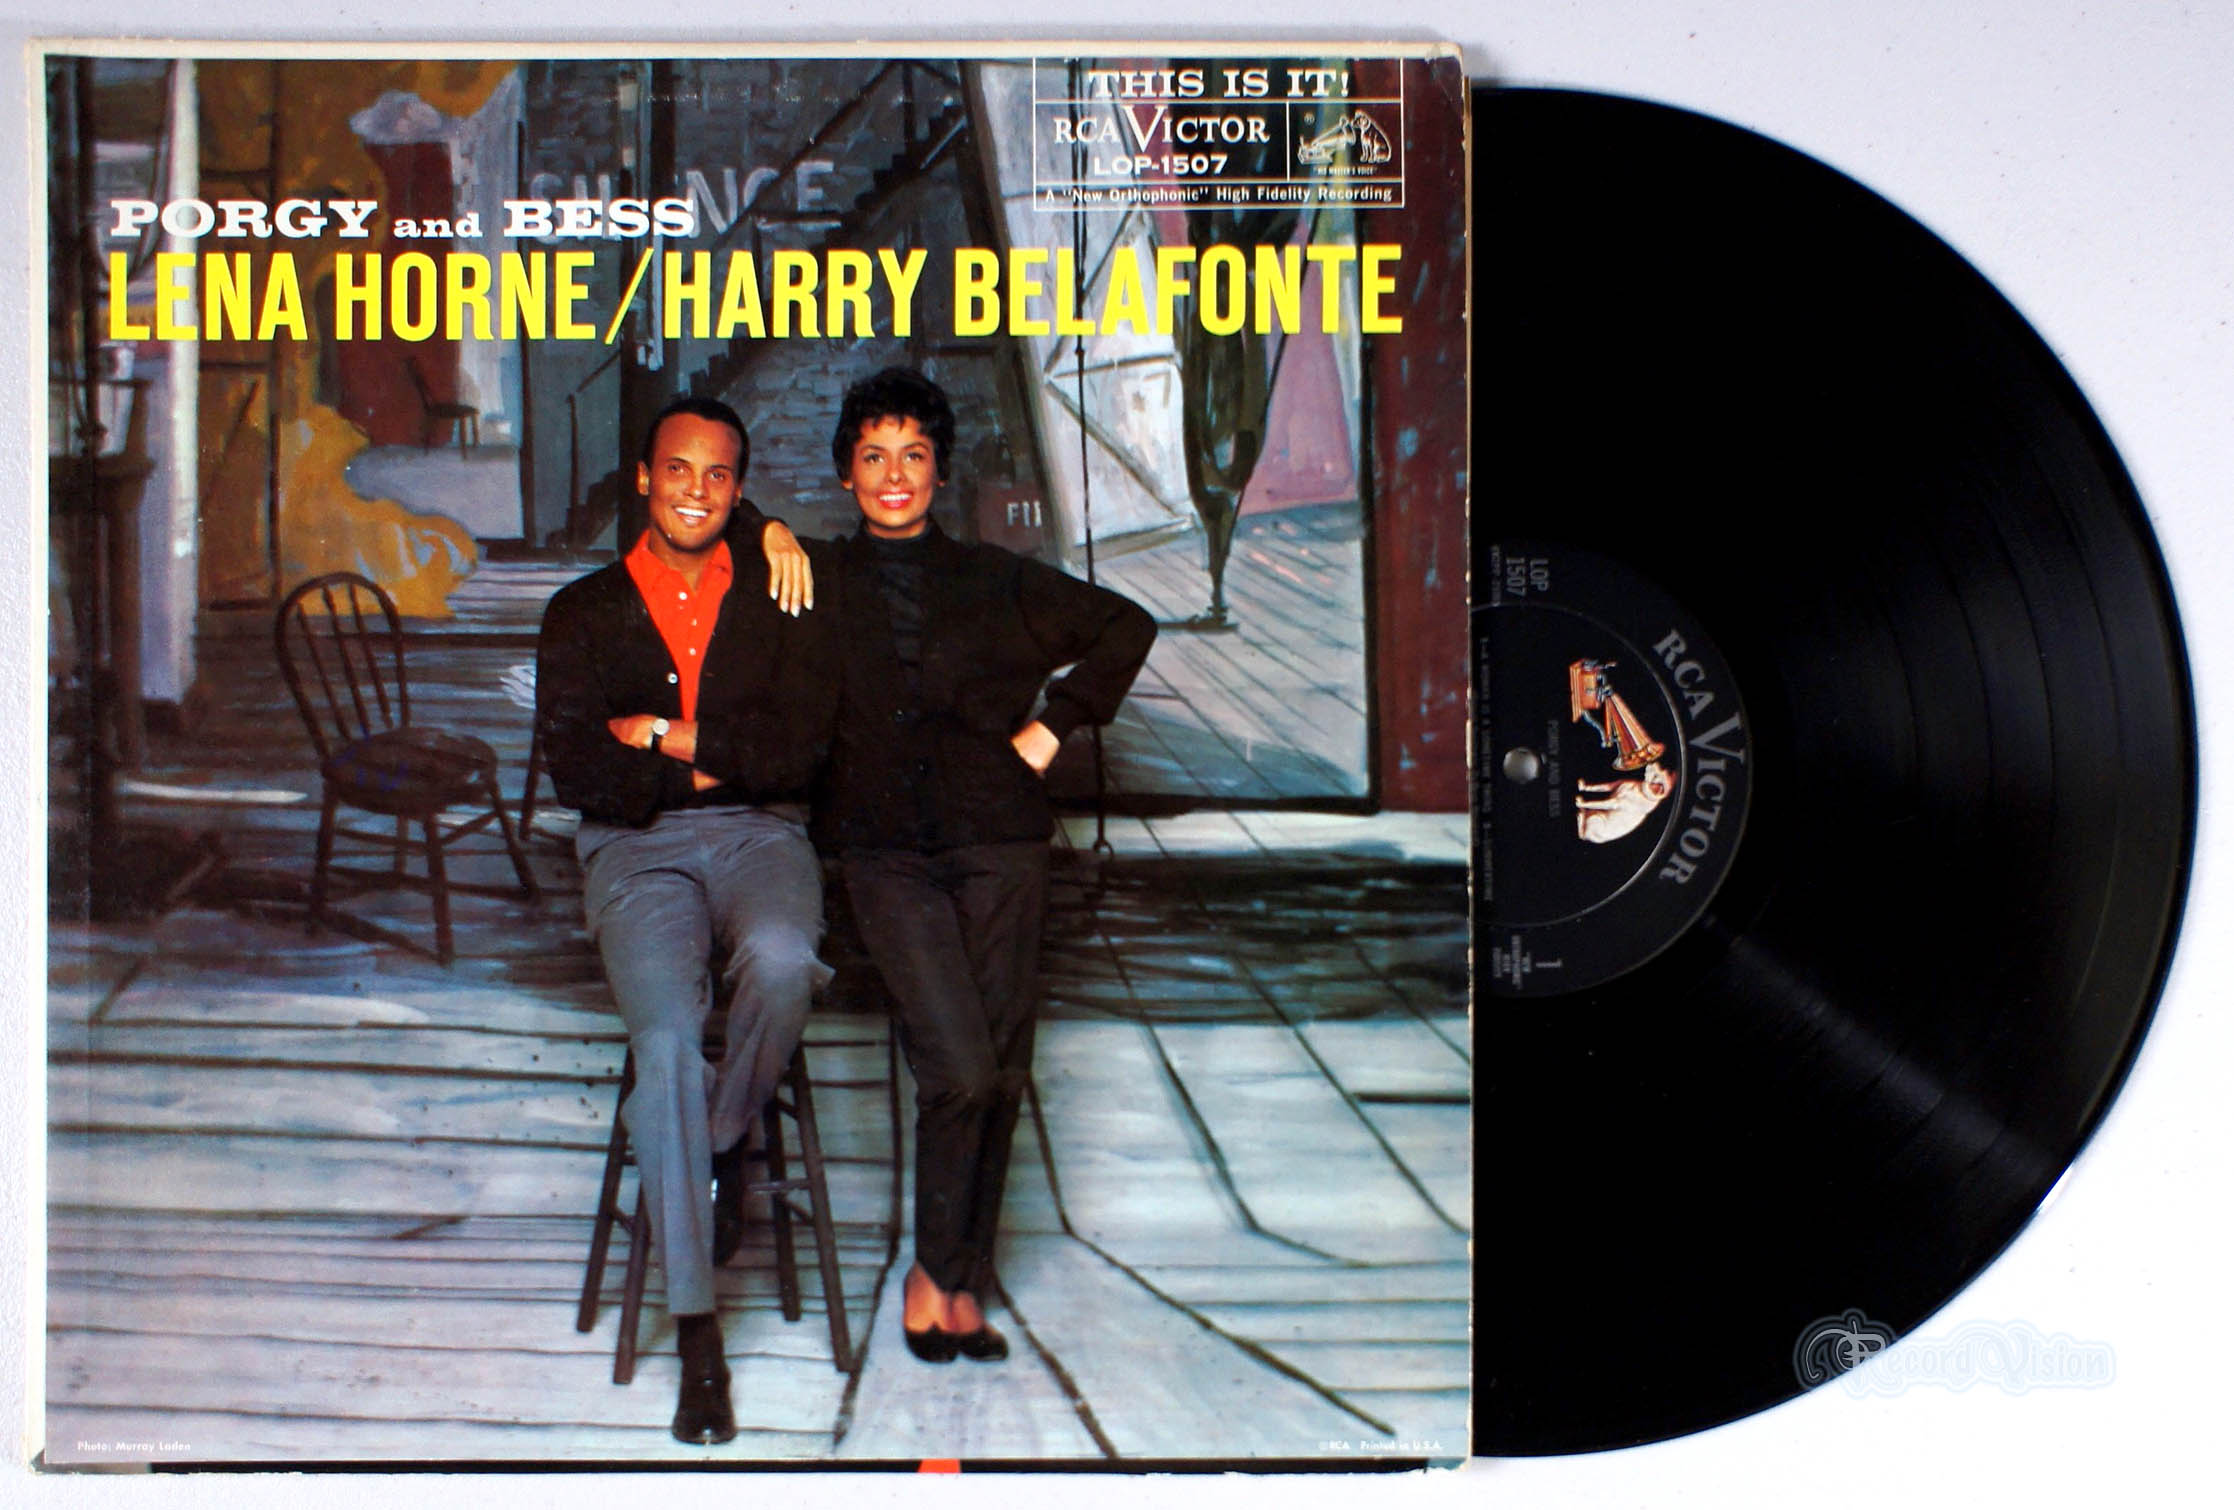 HARRY BELAFONTE - Porgy and Bess - 33T